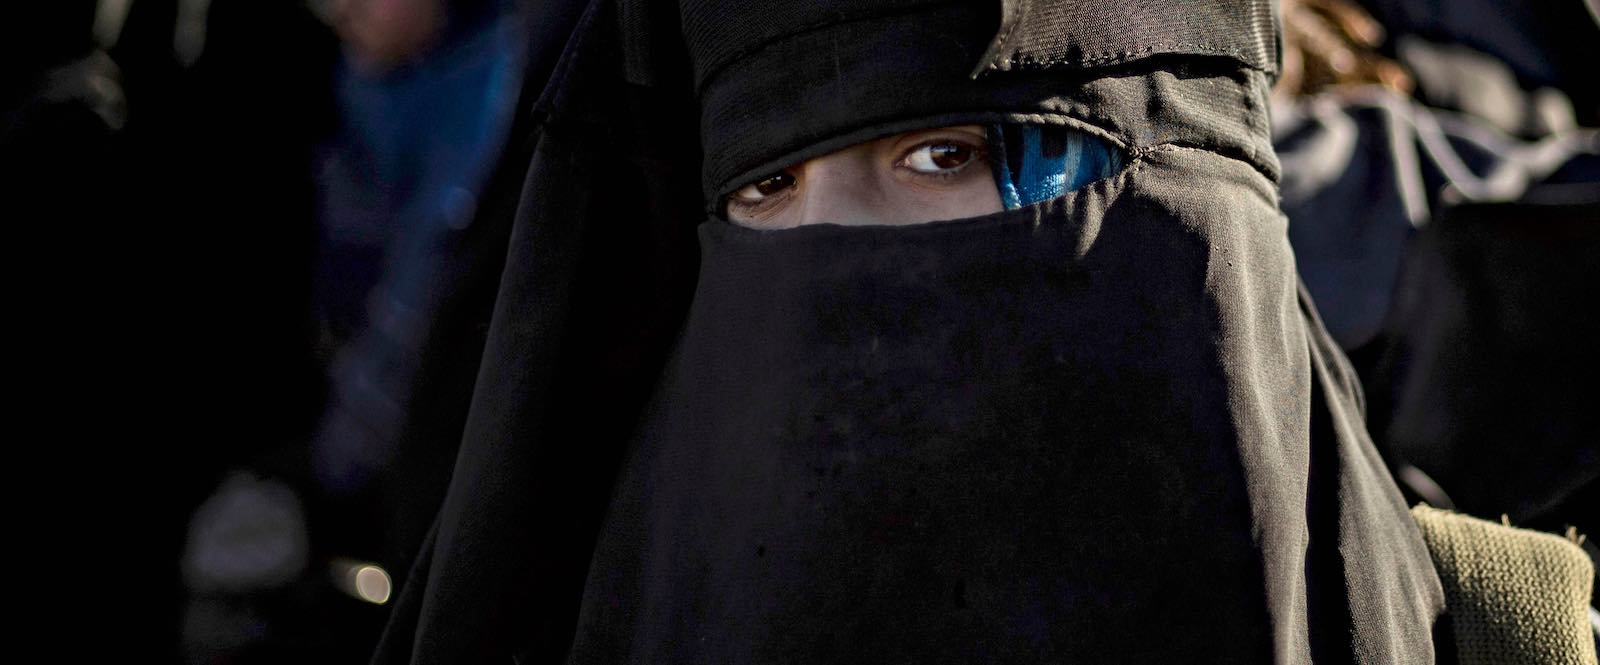 Women played a greater rolein violent operations and enforcing the draconian rules of the caliphatethan previously understood (Photo: Delil Souleiman via Getty)